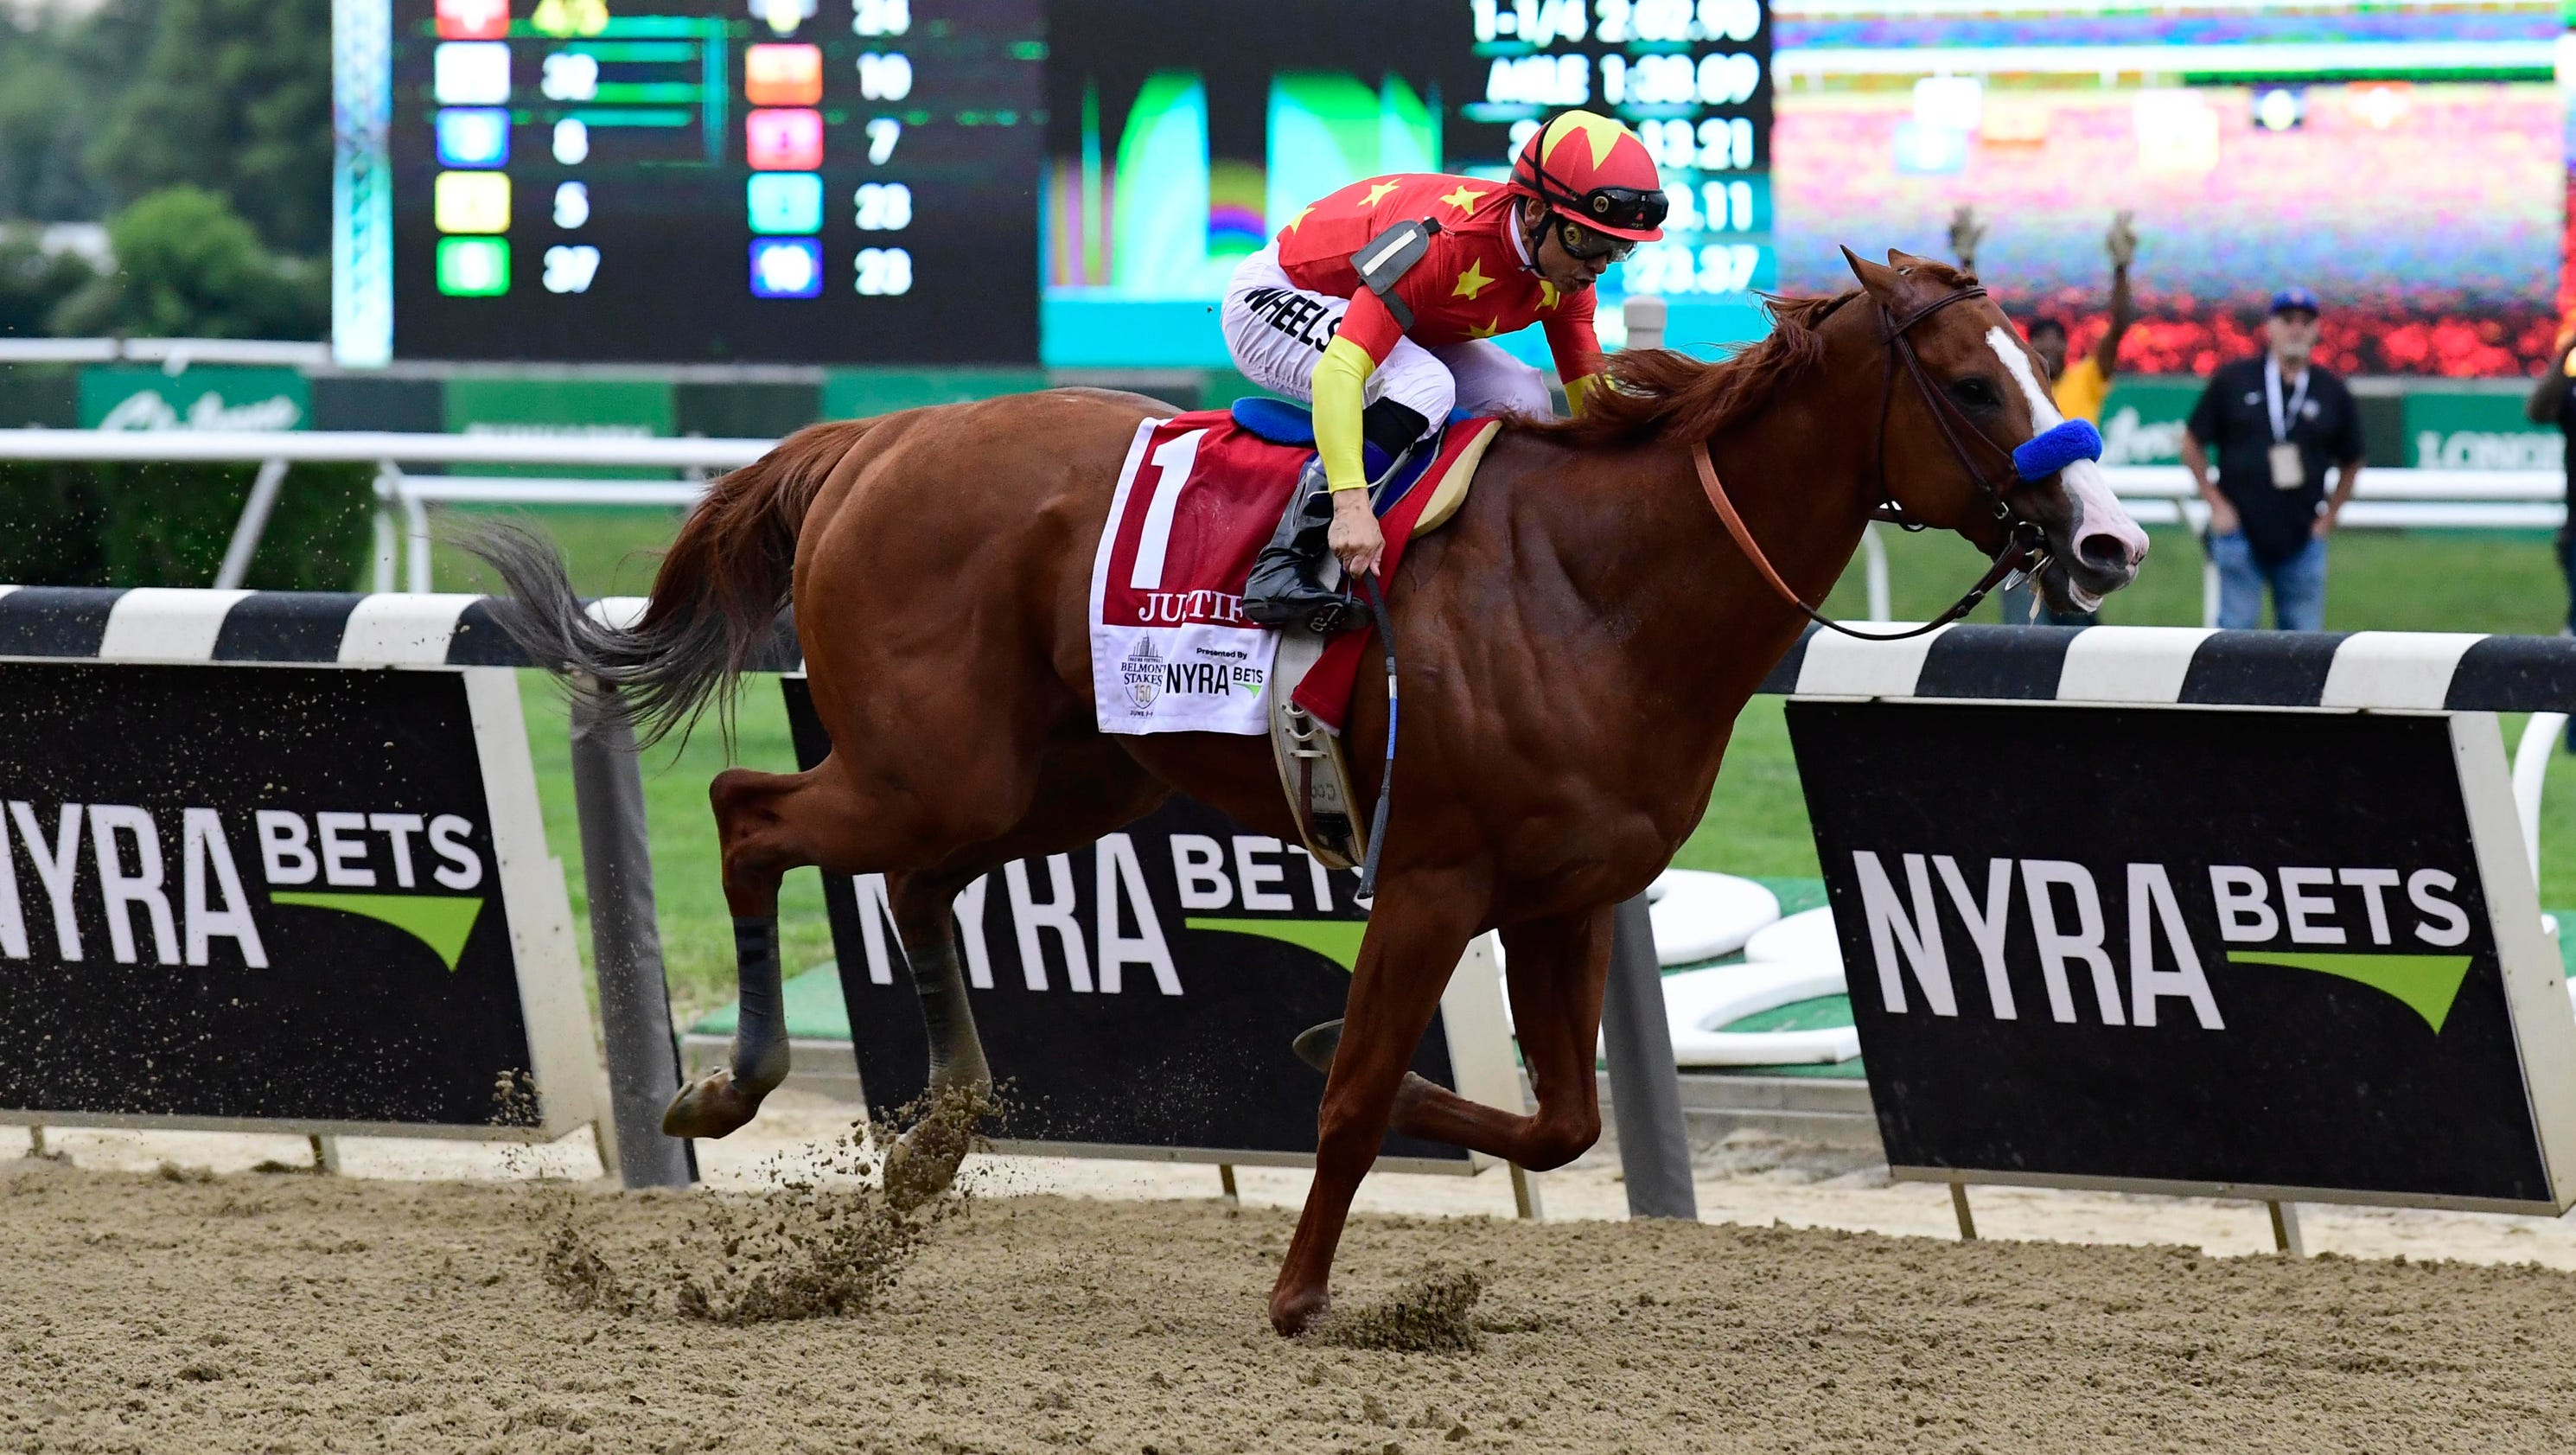 Triple Crown winner Justify will continue racing through 2018